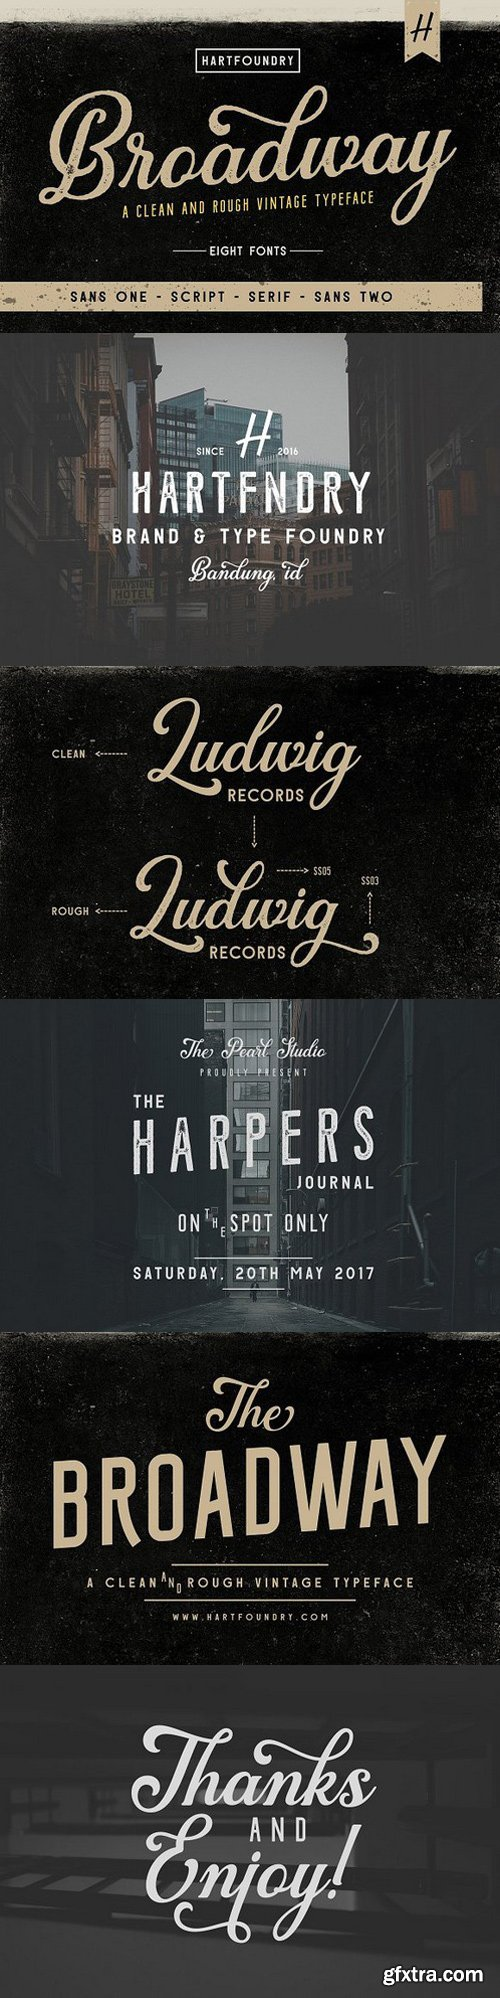 Download CM - Broadway | Font Pack 1518822 (With images) | Font ...